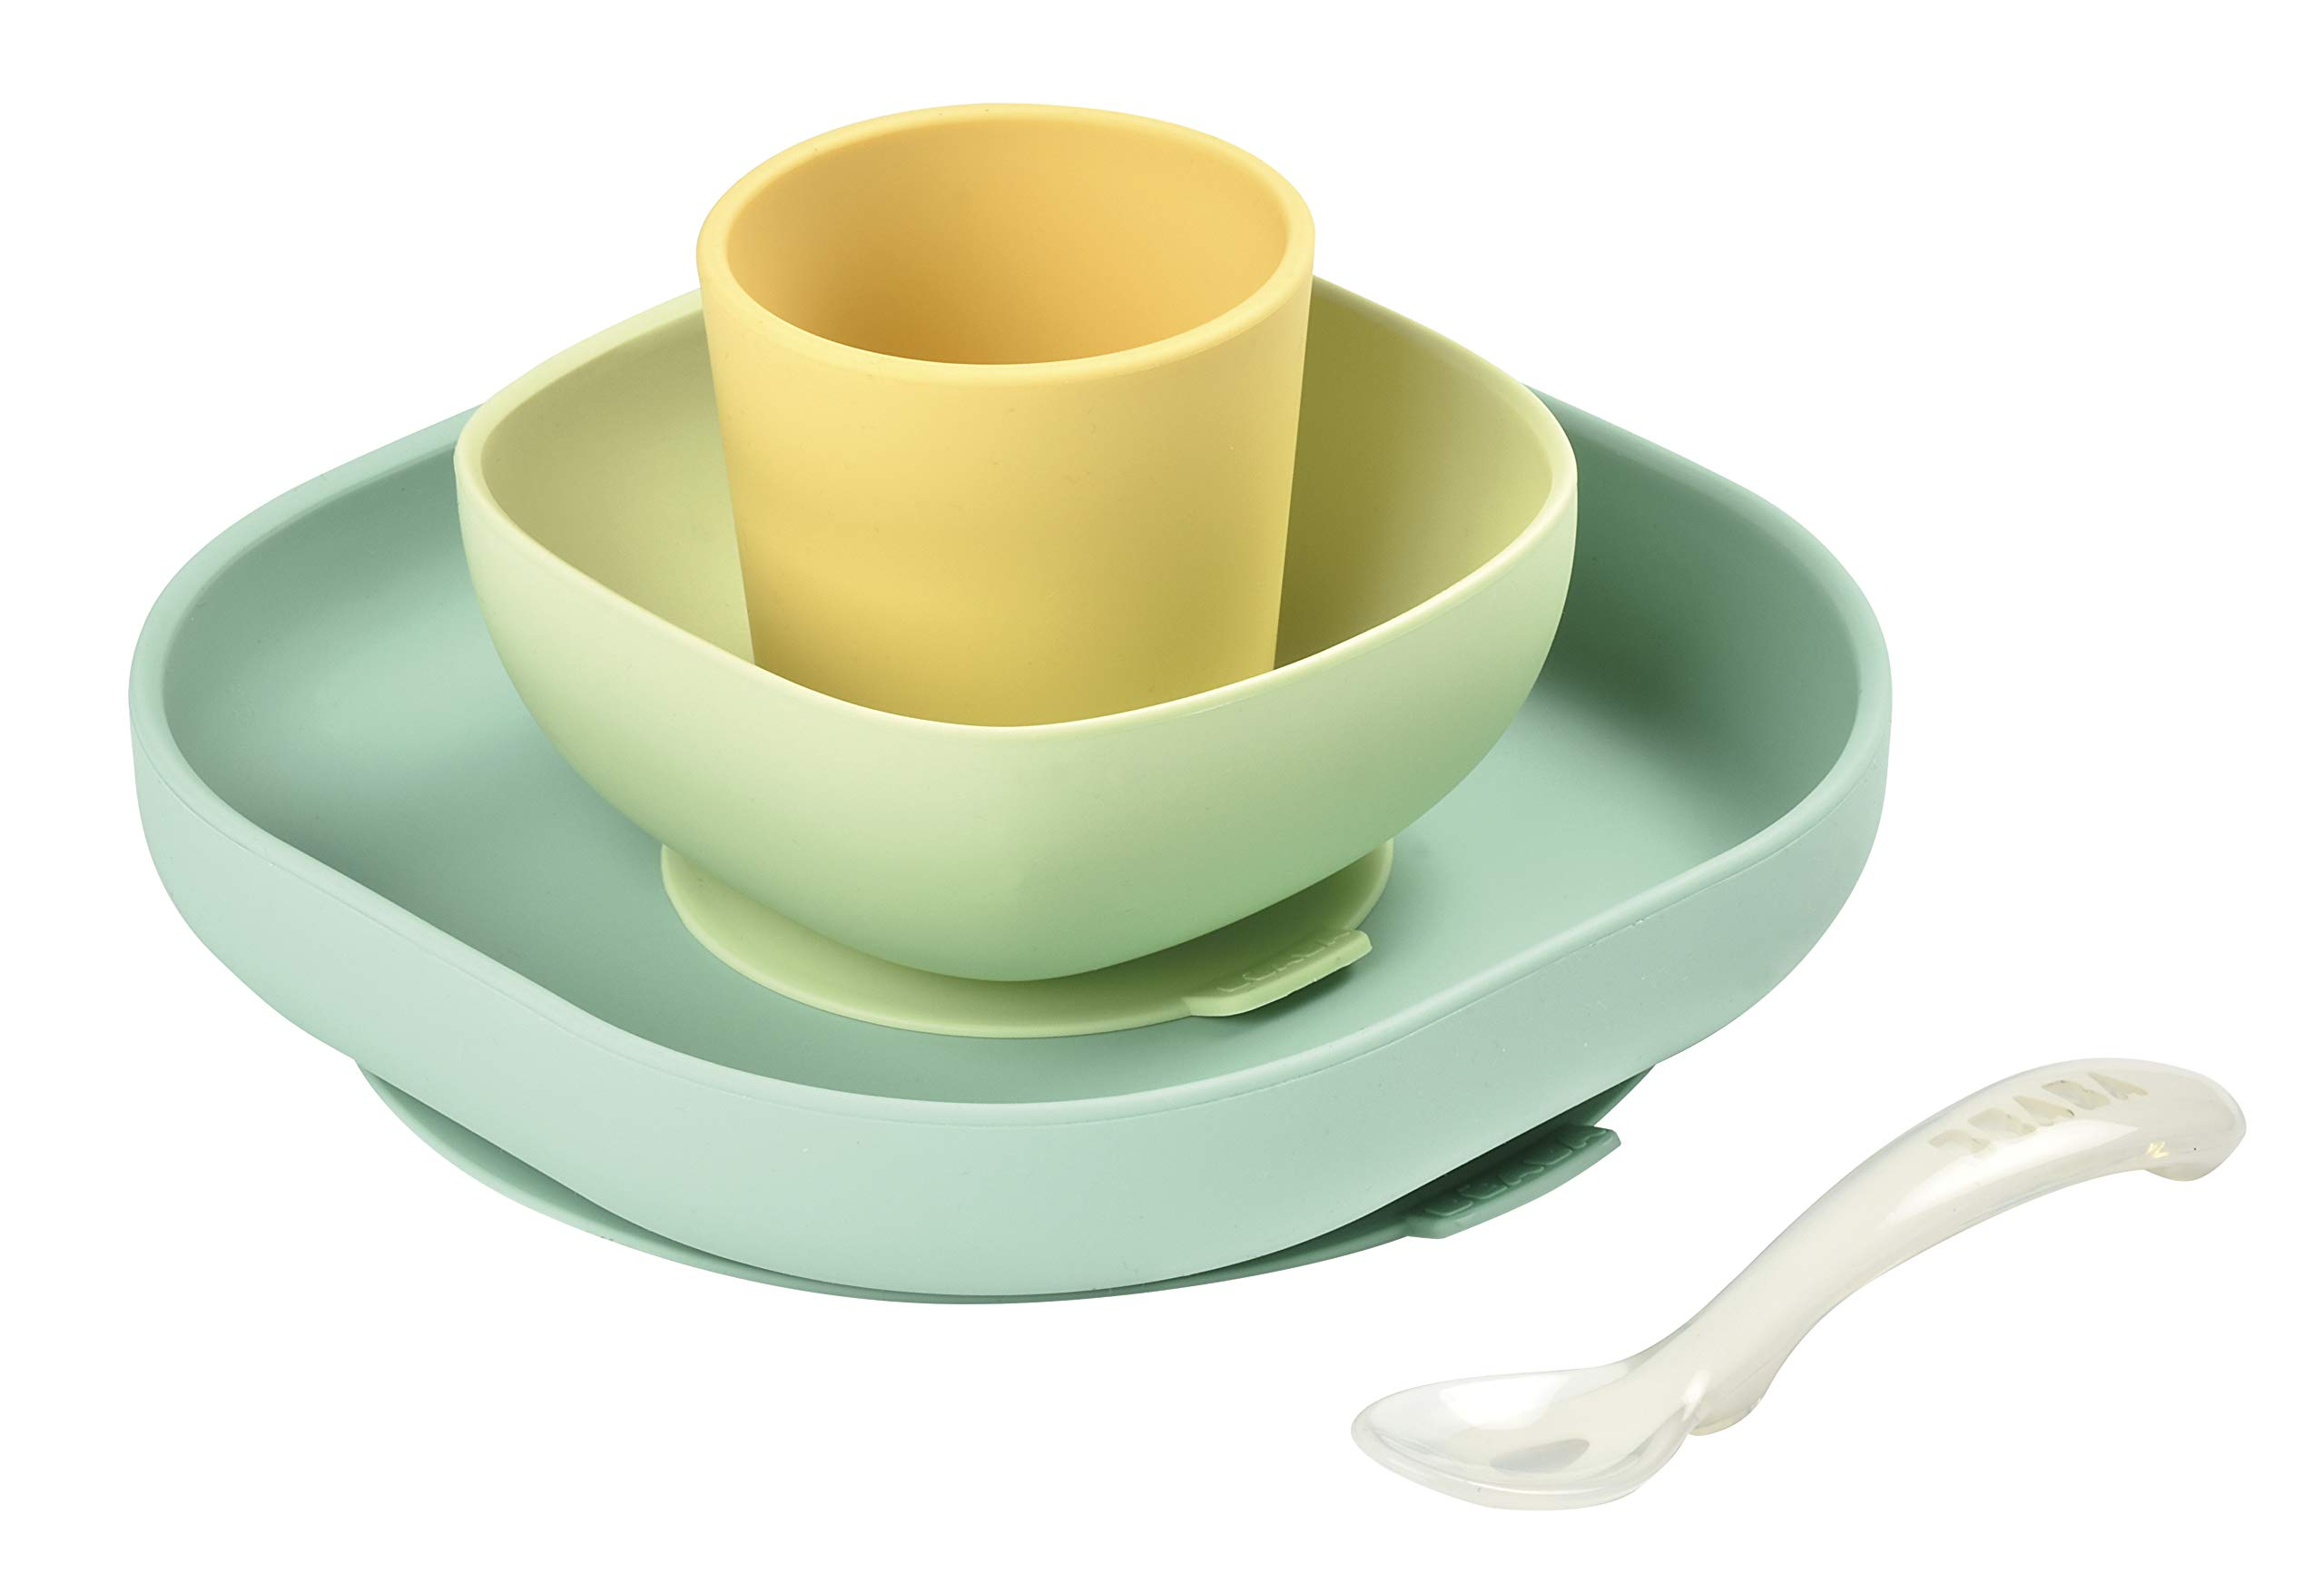 BEABA Silicone 4-Piece Dishware - Easy to Clean - Dishwasher and Microwave Safe - Soft, Unbreakable, Non-Slip Suction Bottom - Includes Plate, Bowl, Cup and 2nd Stage Silicone Spoon (Pastels)